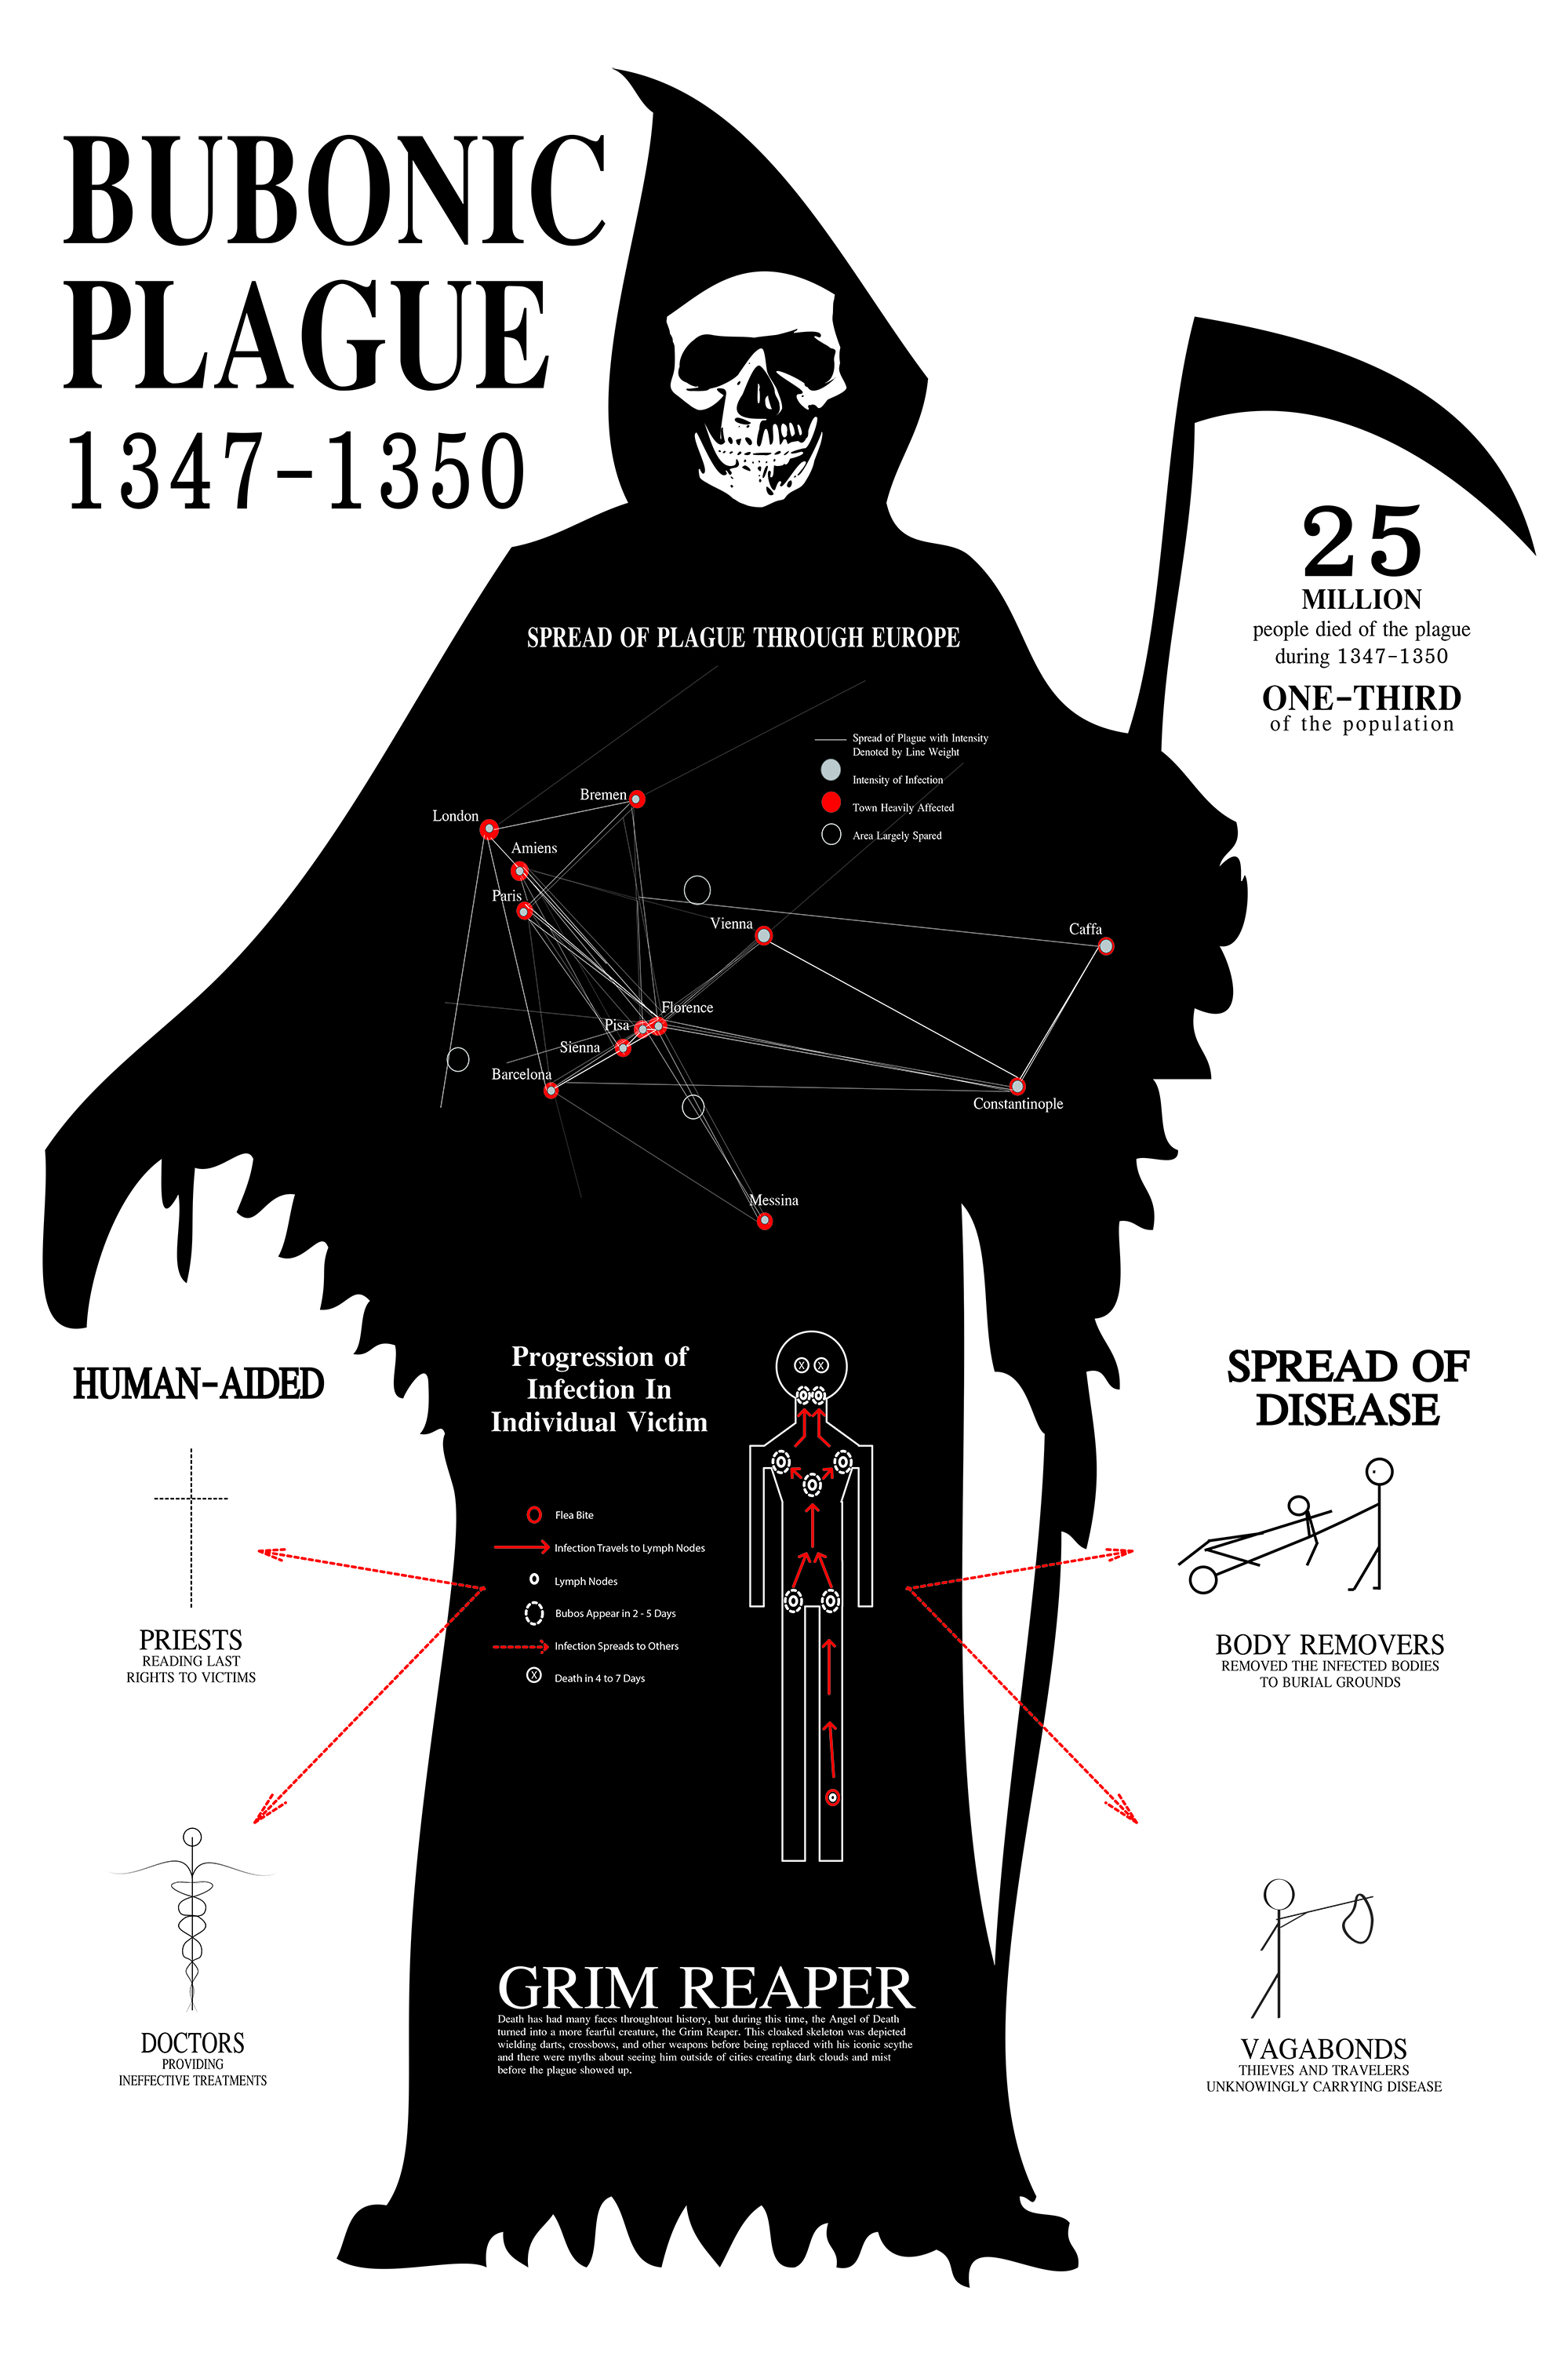 Reaper clipart black plague History! Picture The P Mrs